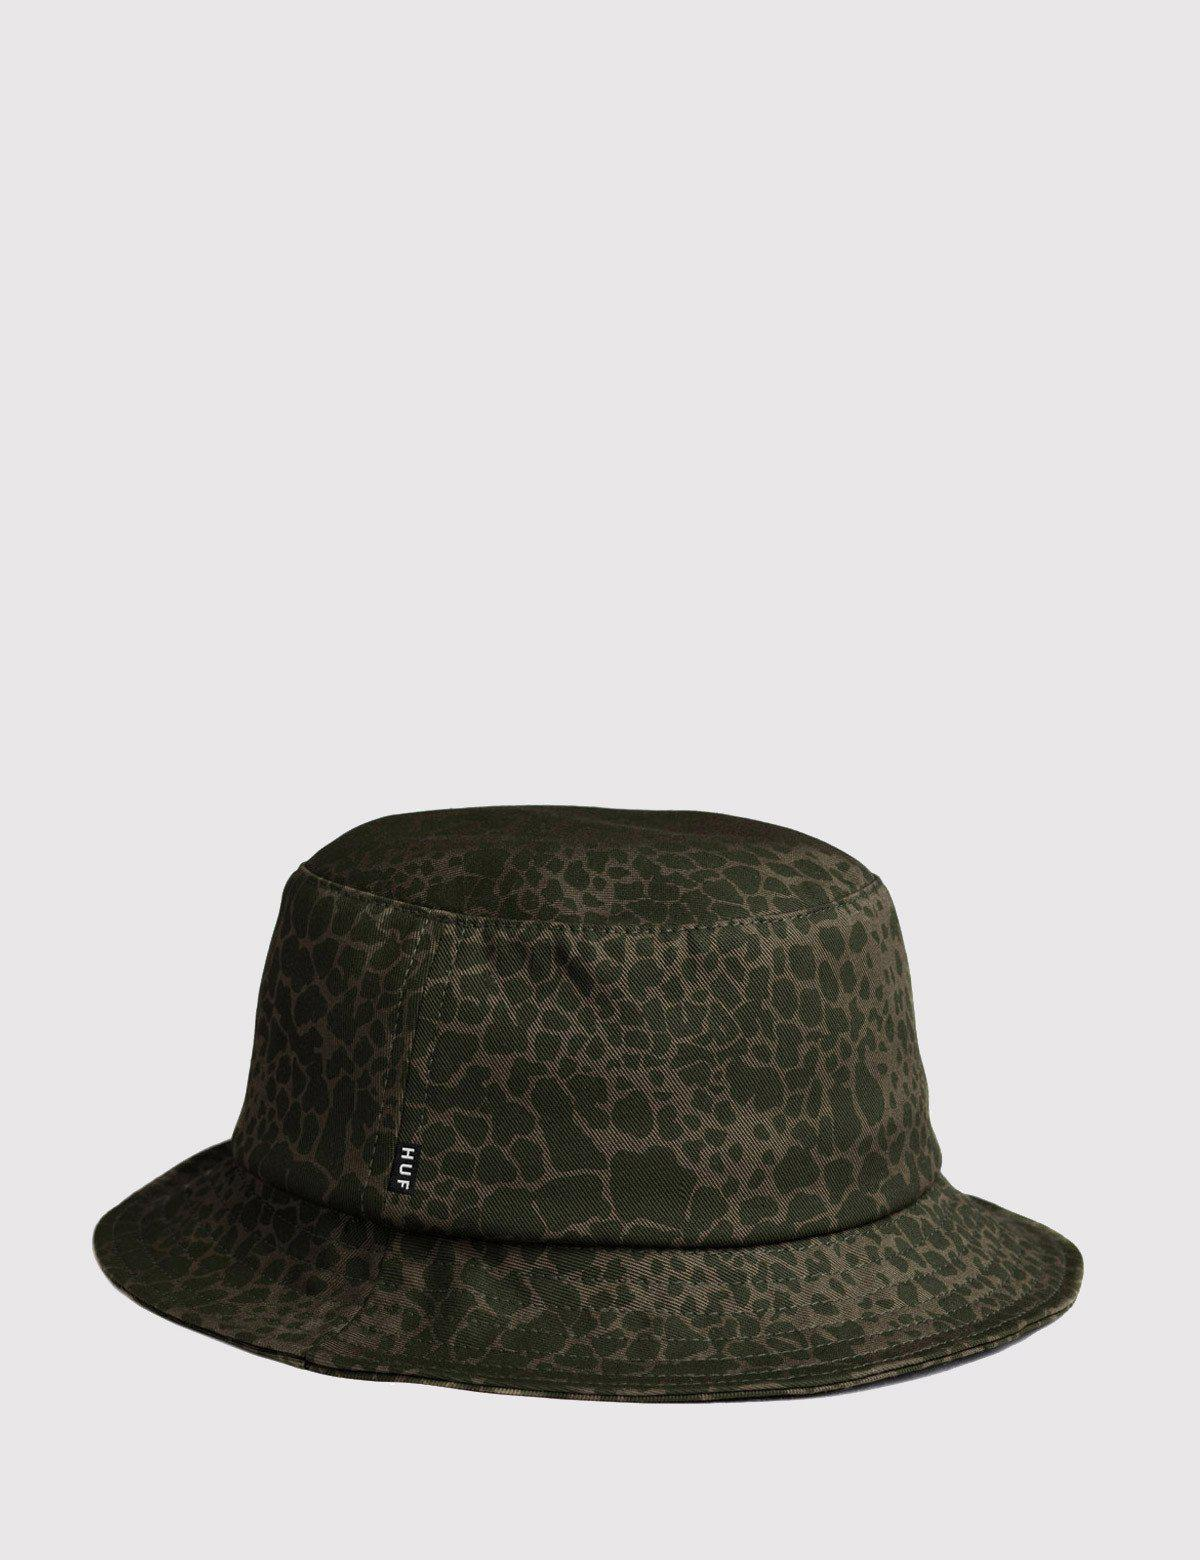 c3f7e6bef5f Lyst - Huf Shell Shock Bucket Hat in Green for Men